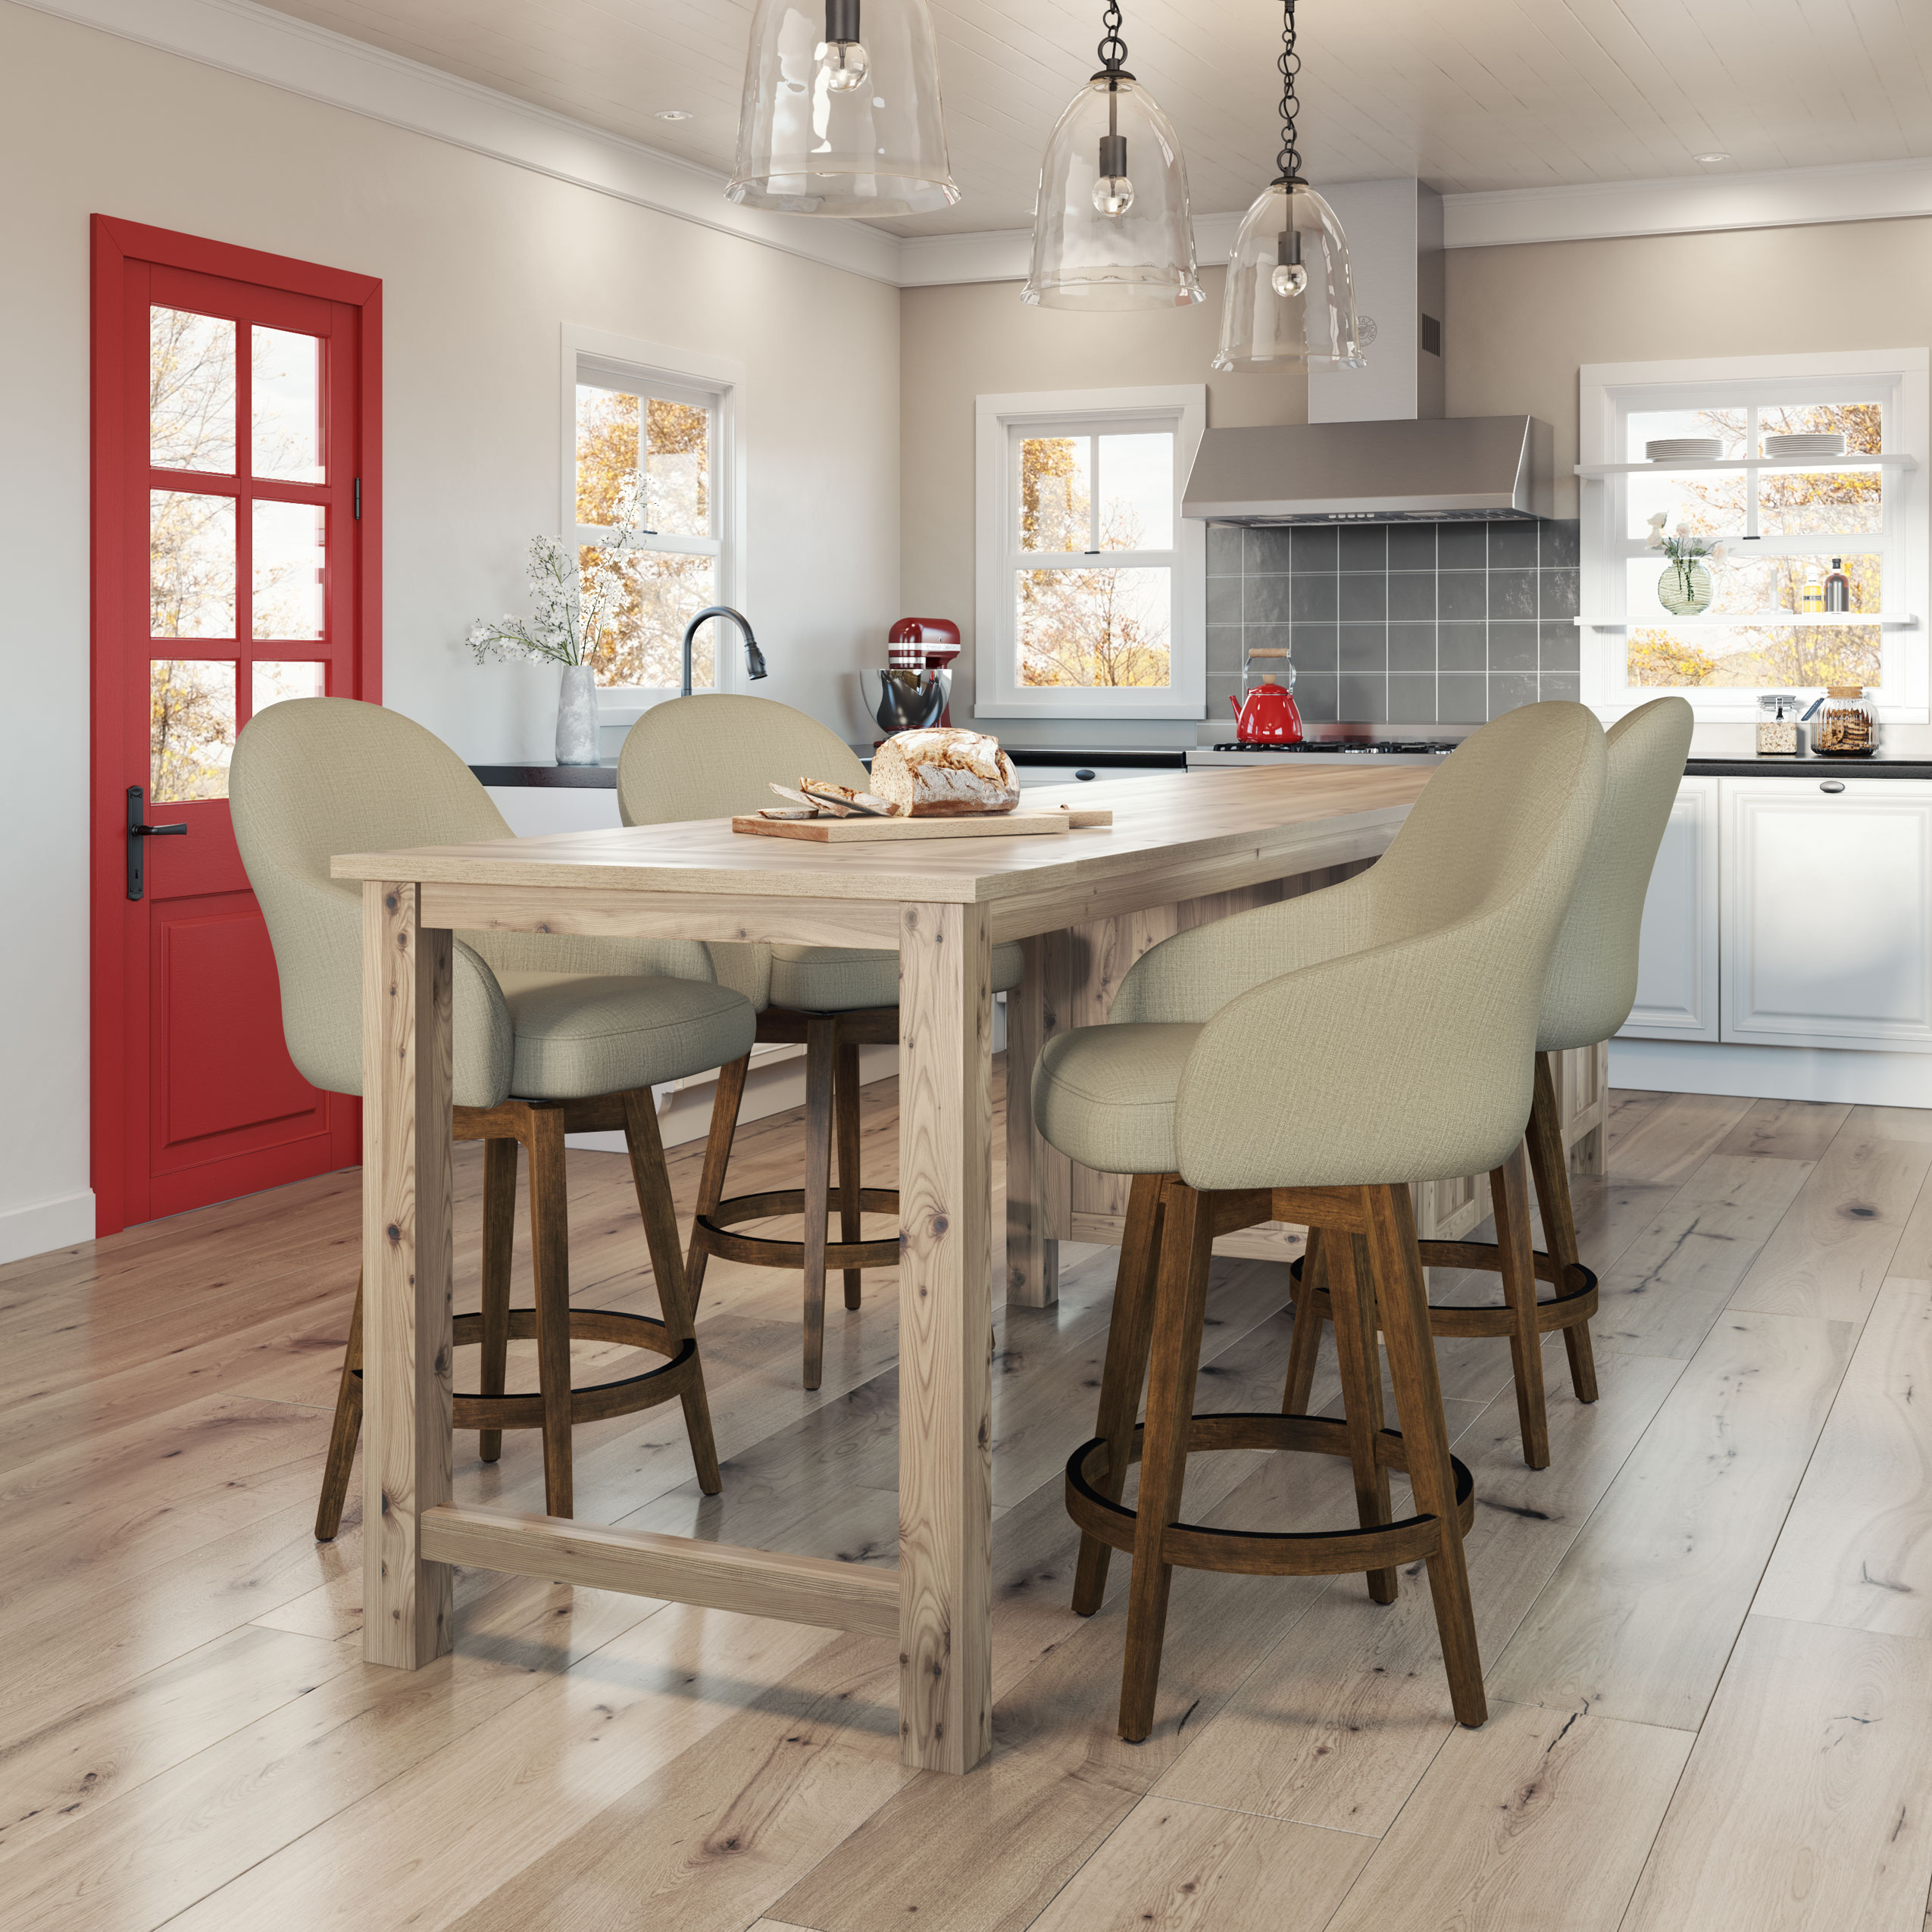 Amisco Collin Swivel Stool With Wood Base Dinettes Unlimited